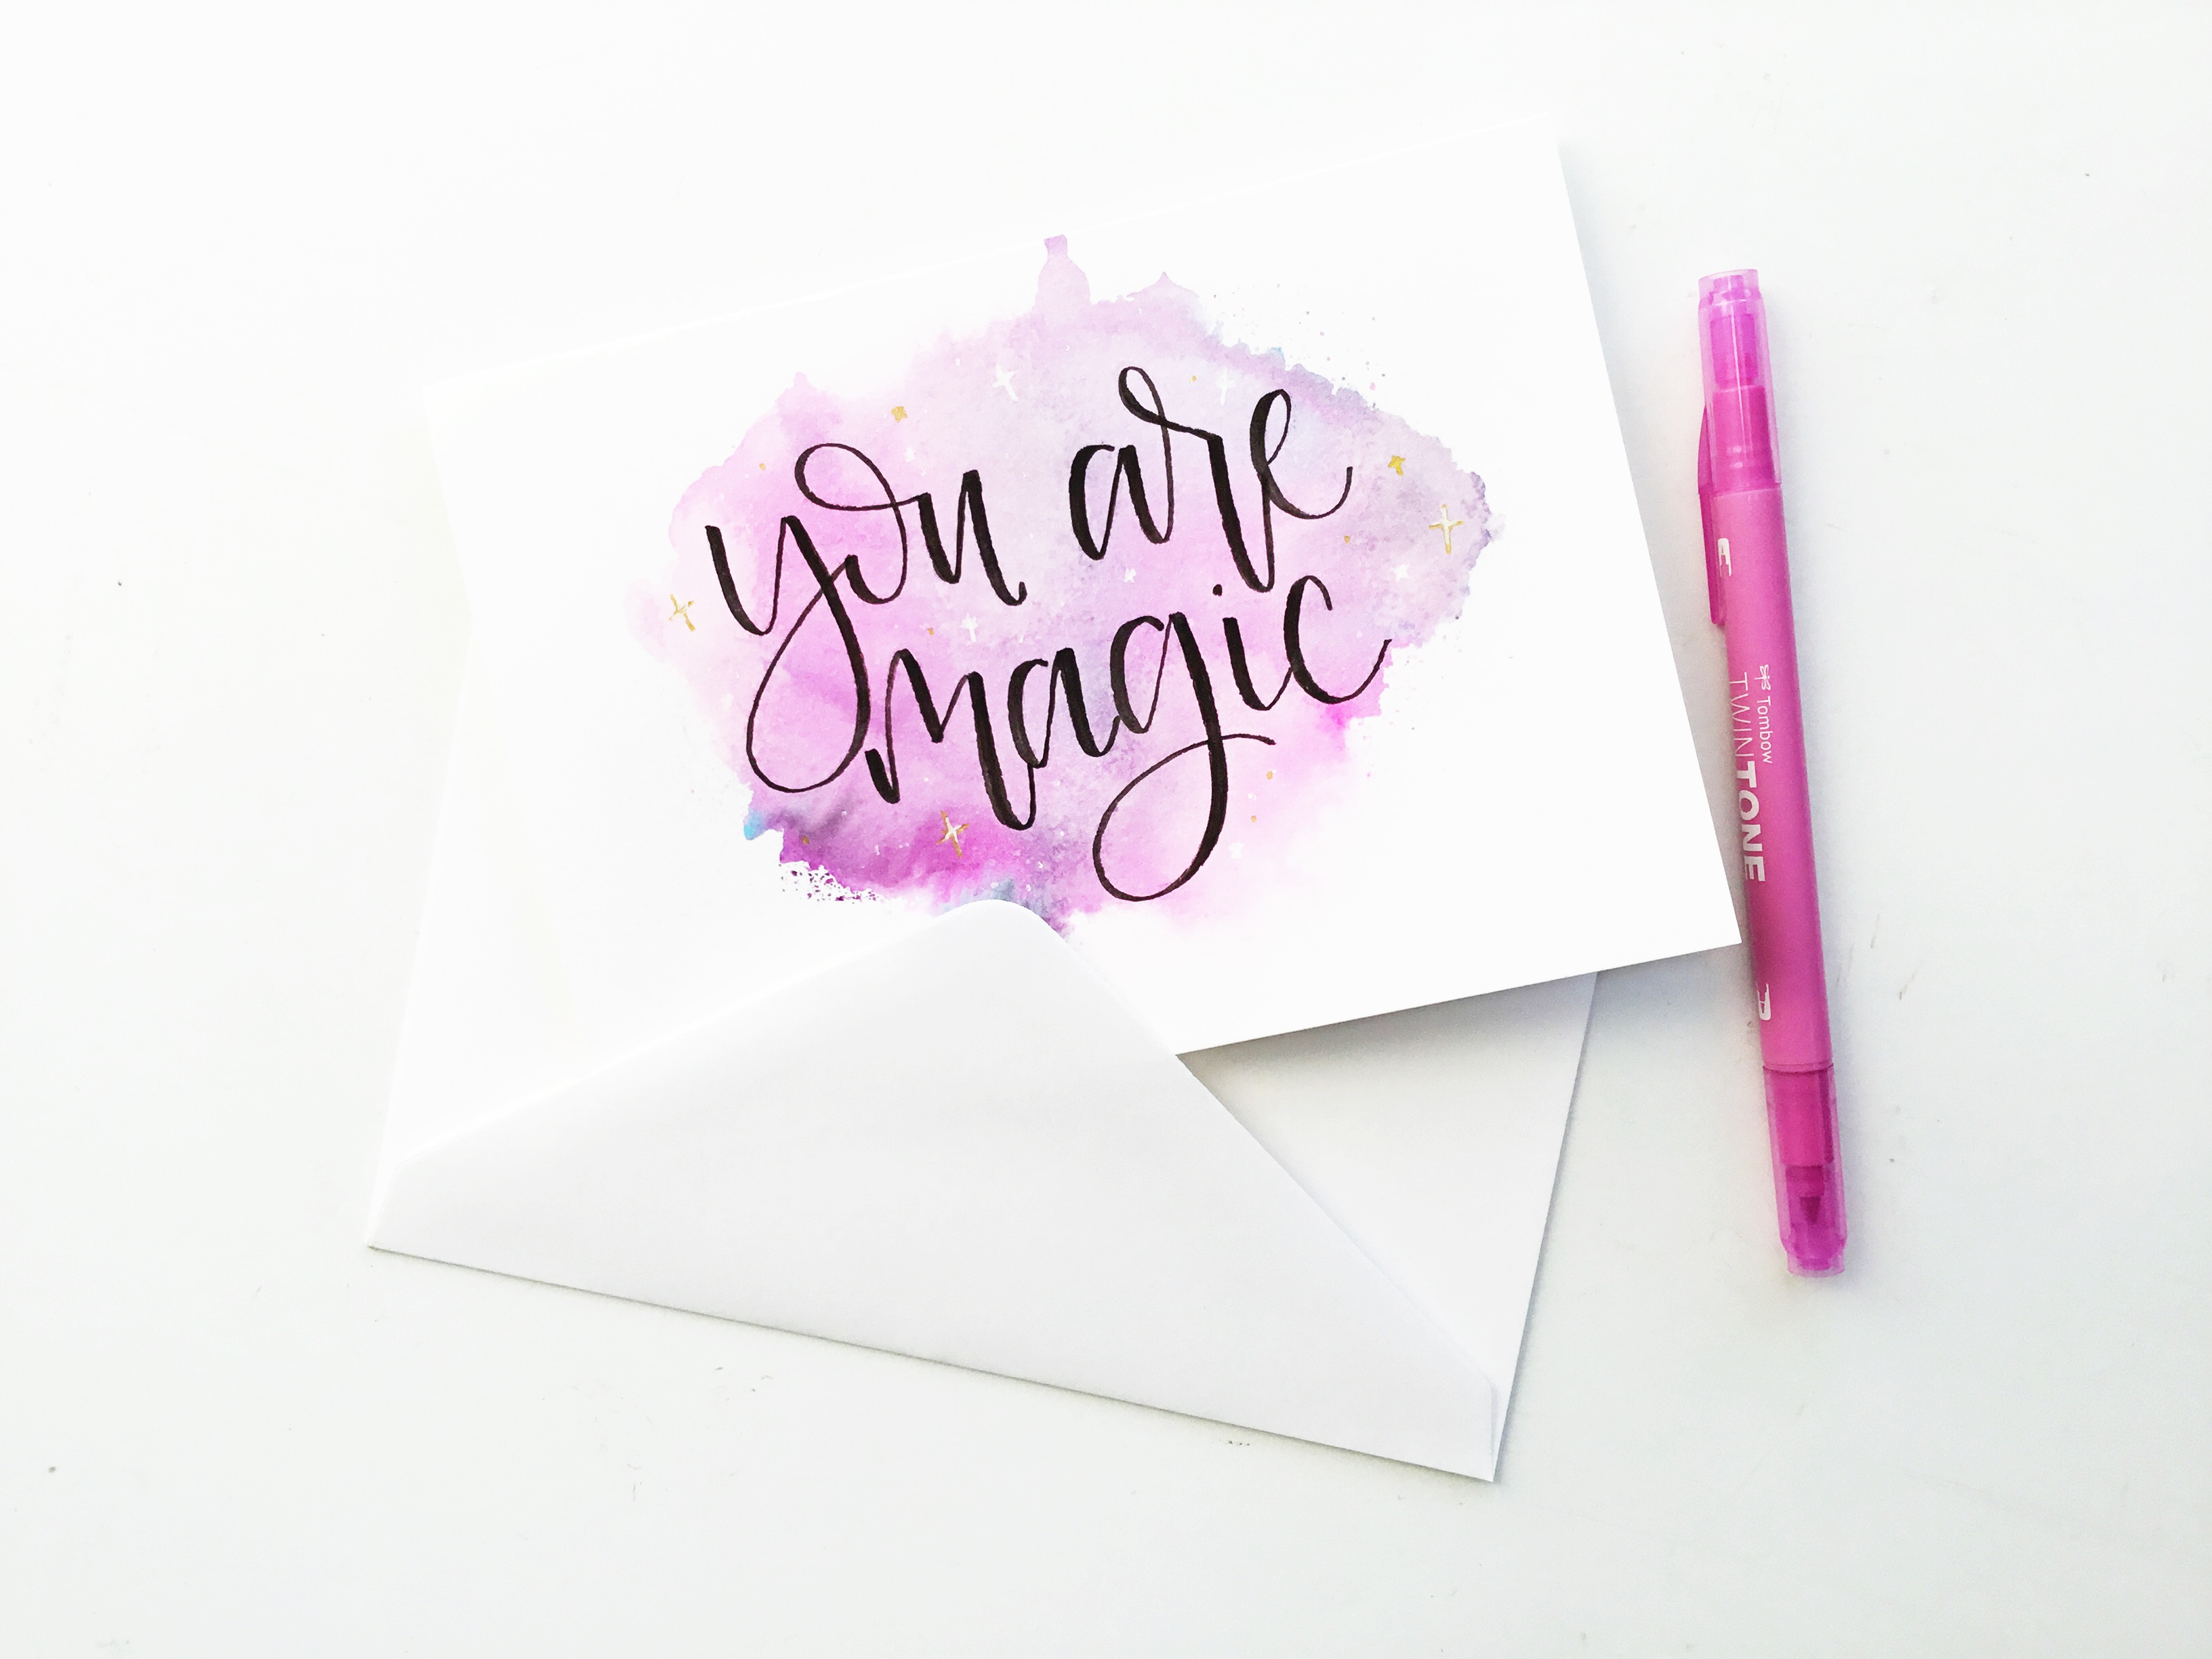 Galaxy greeting card to show you how to make a beautiful magical card to send to someone you love because we all know we could use a little love and kindness to brighten kristyandbryce Image collections